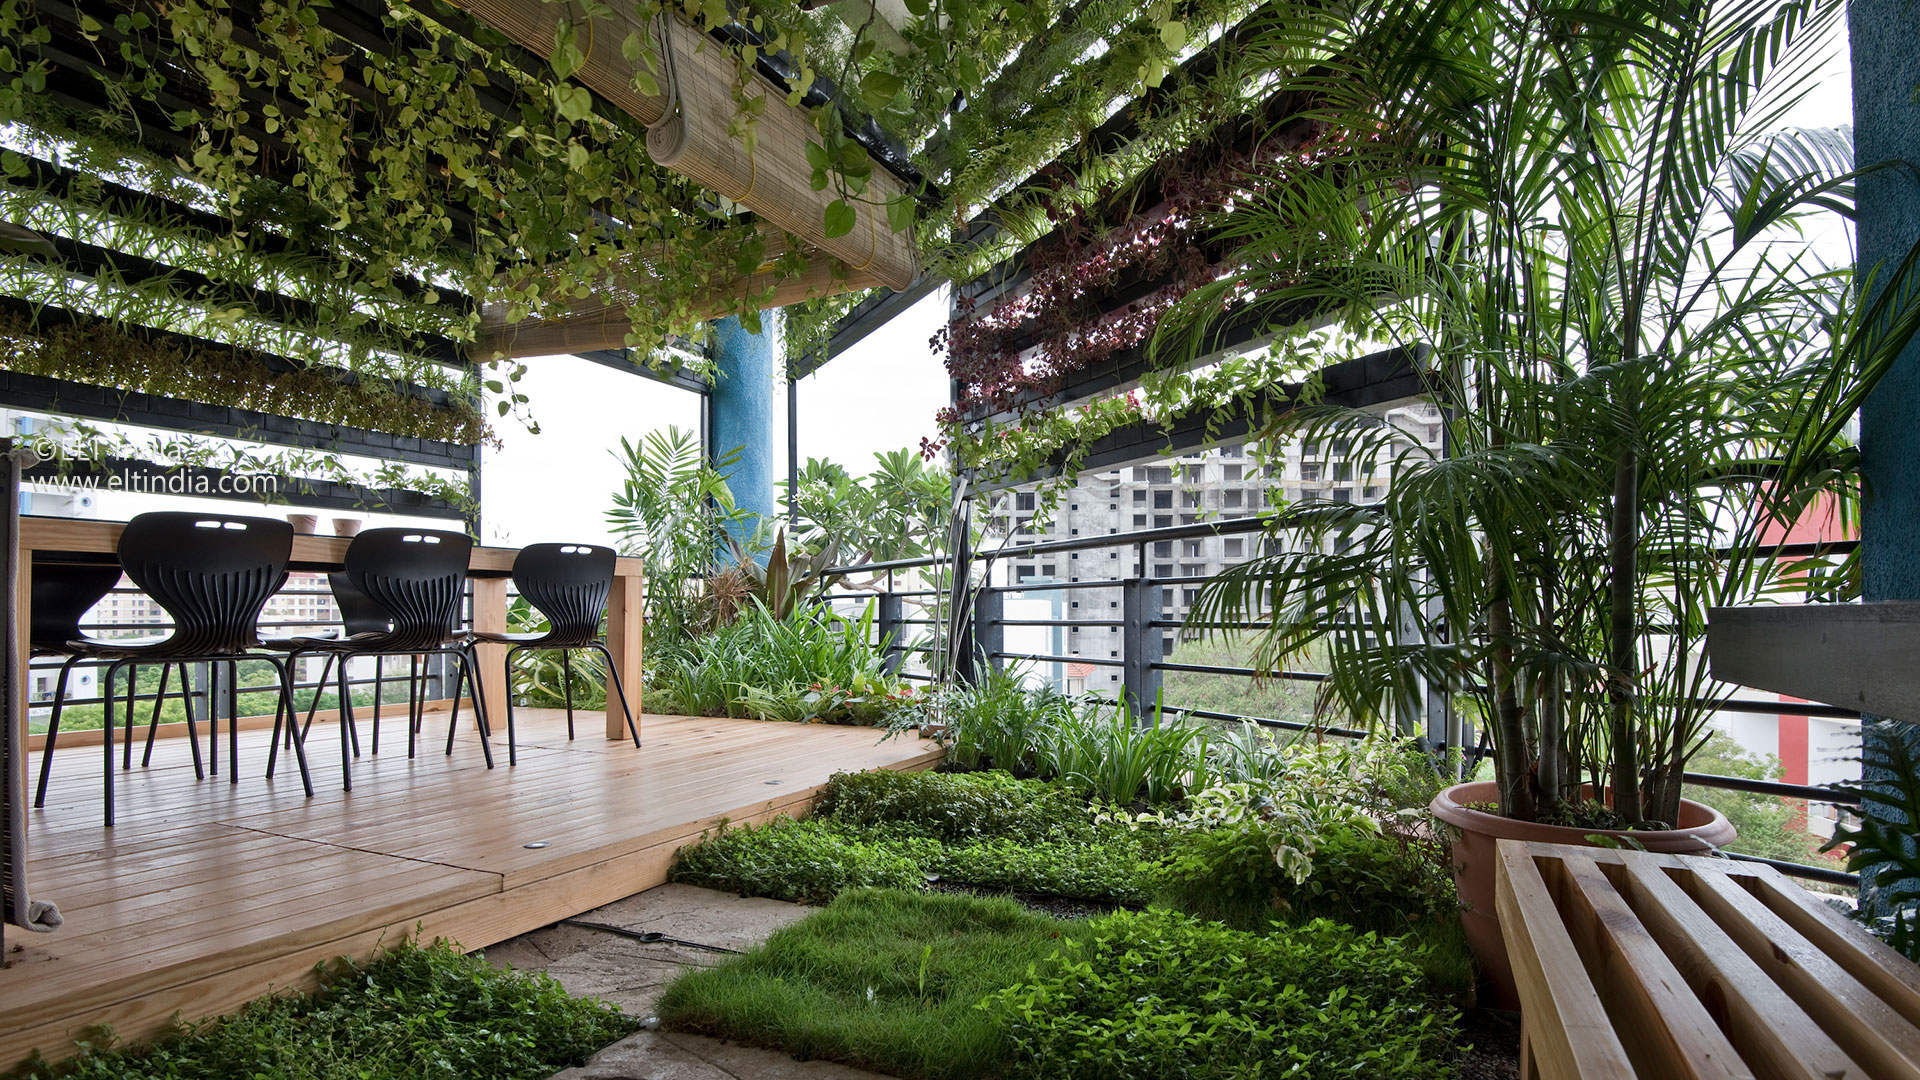 Vertical Garden Company - product biophilic spaces